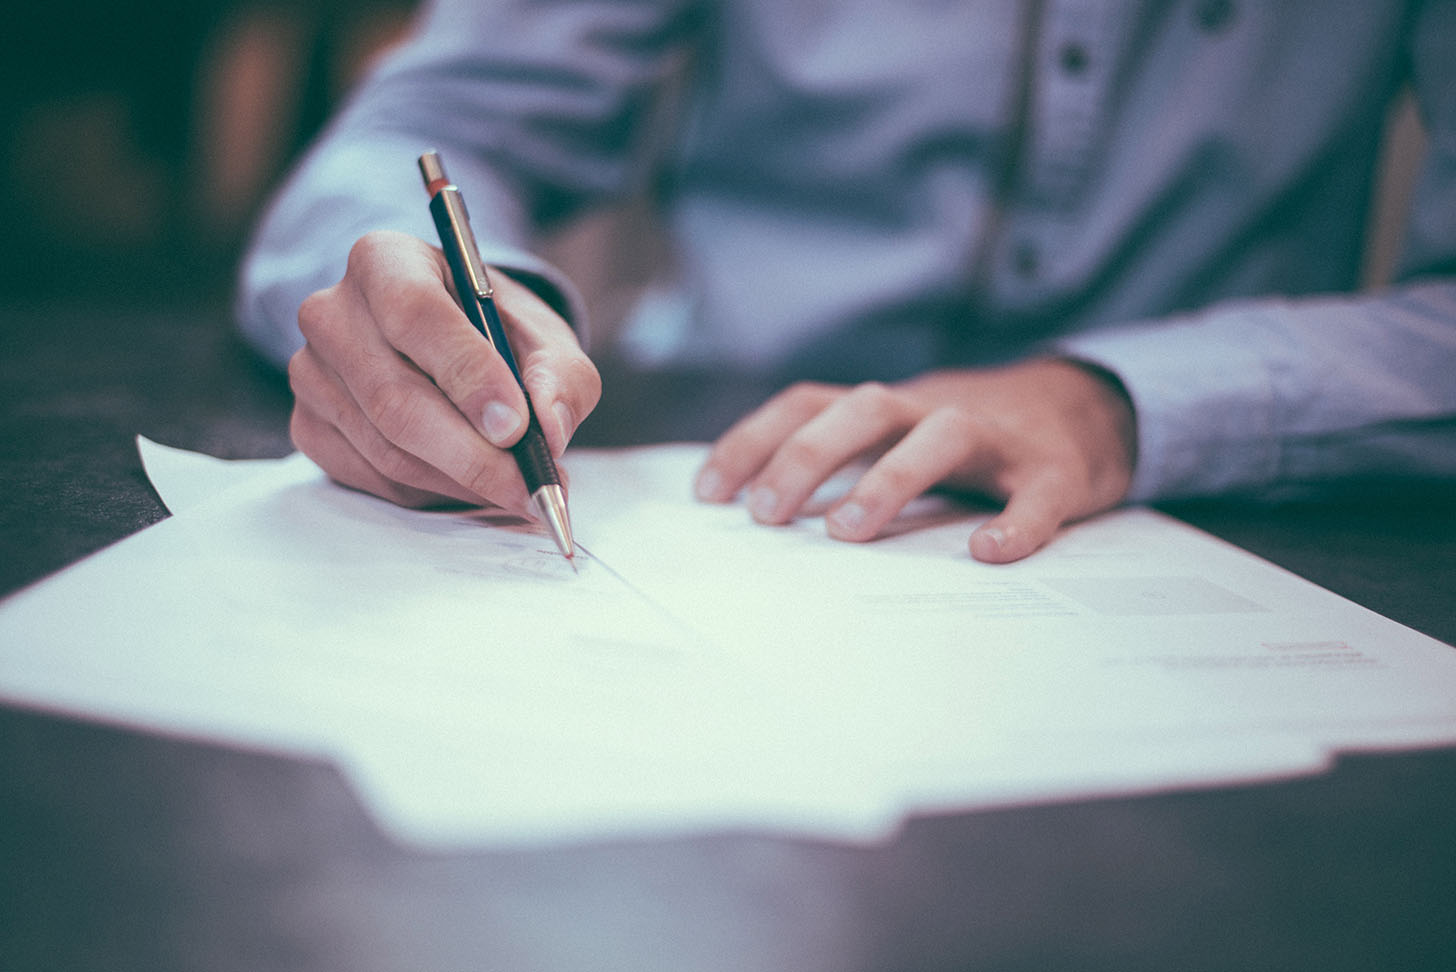 Protect yourself with these contract samples - Crunch - Image of a contract